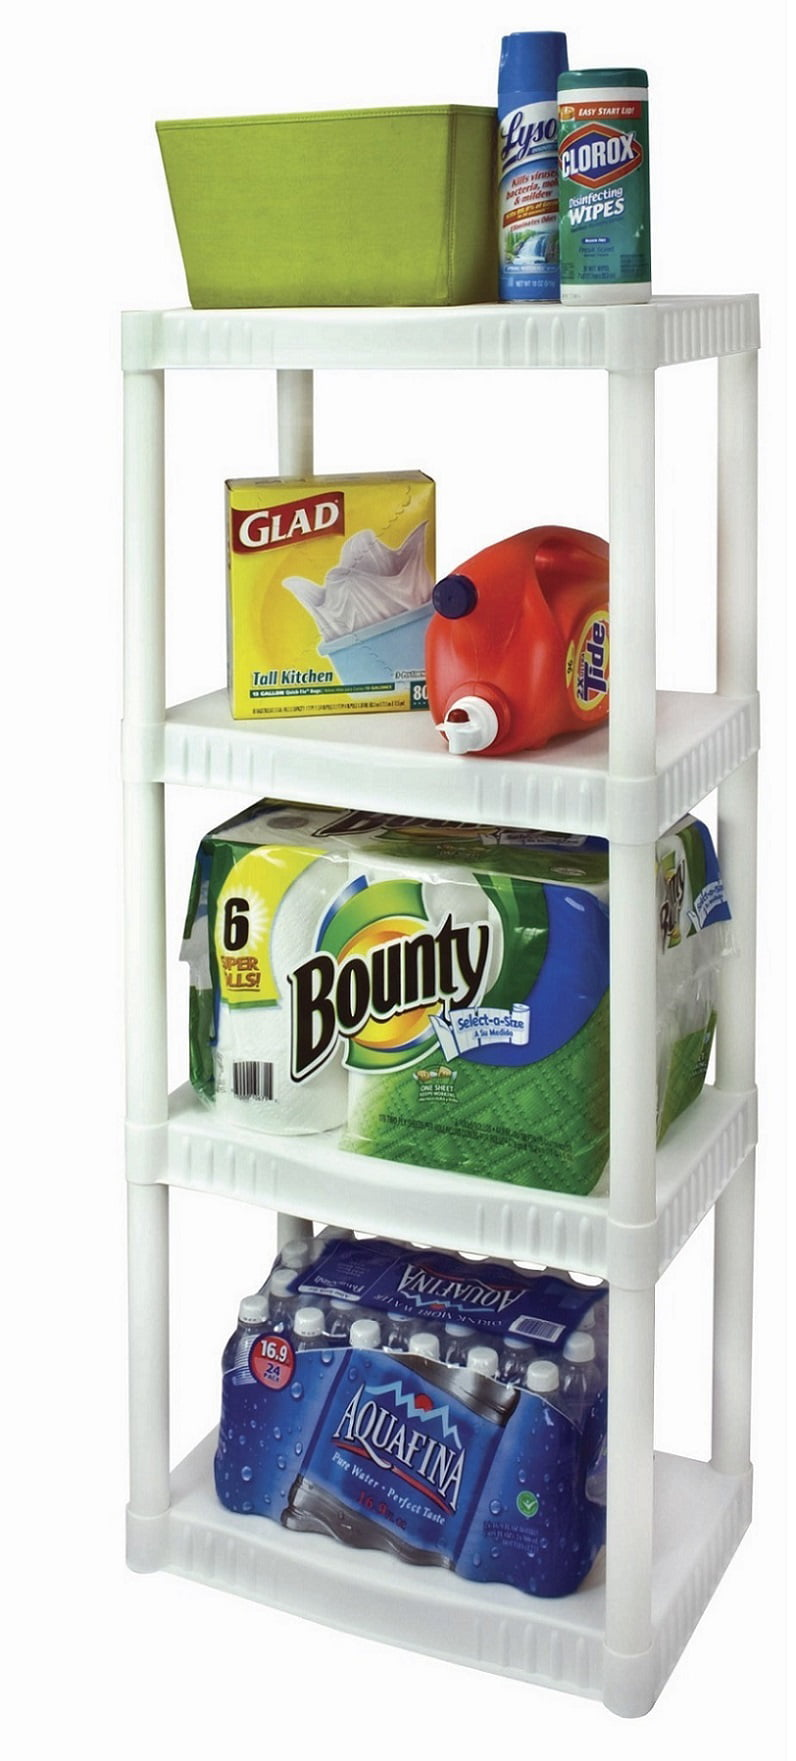 plano 4 tier heavy duty plastic shelves white shelving storage ebay. Black Bedroom Furniture Sets. Home Design Ideas